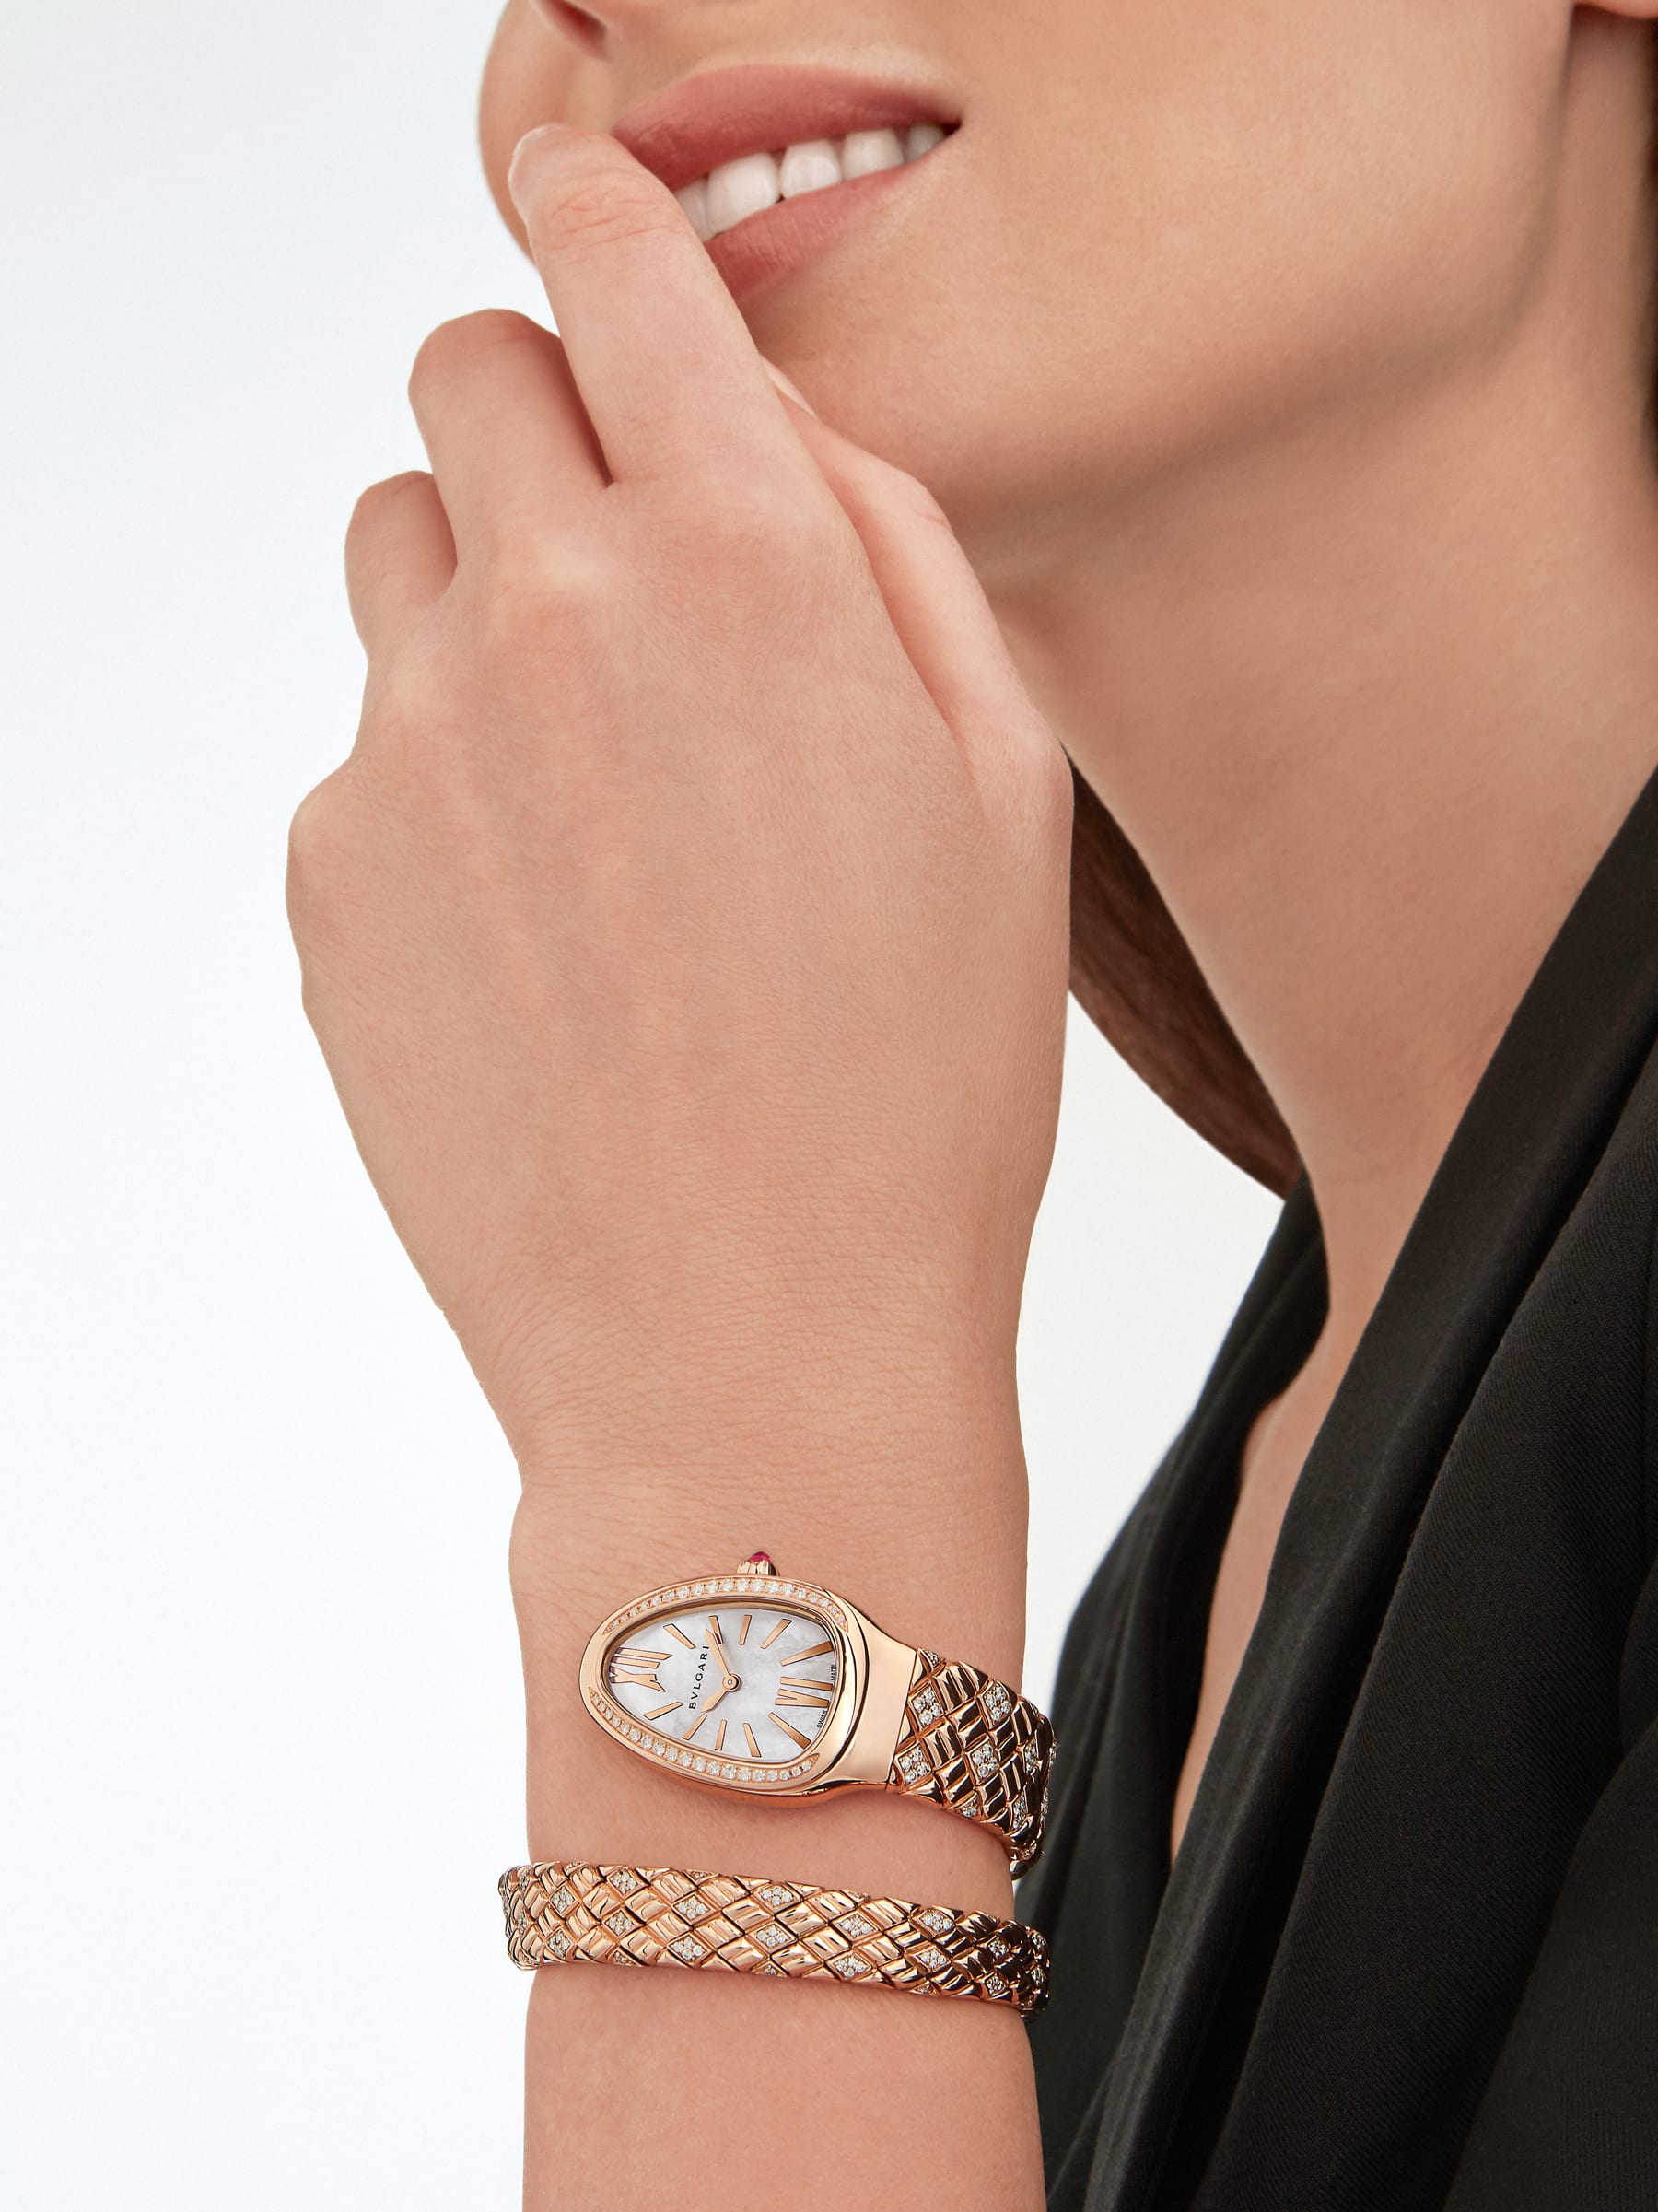 Serpenti Spiga single-spiral watch with 18 kt rose gold case and bracelet set with diamonds, and white mother-of-pearl dial 103250 image 4